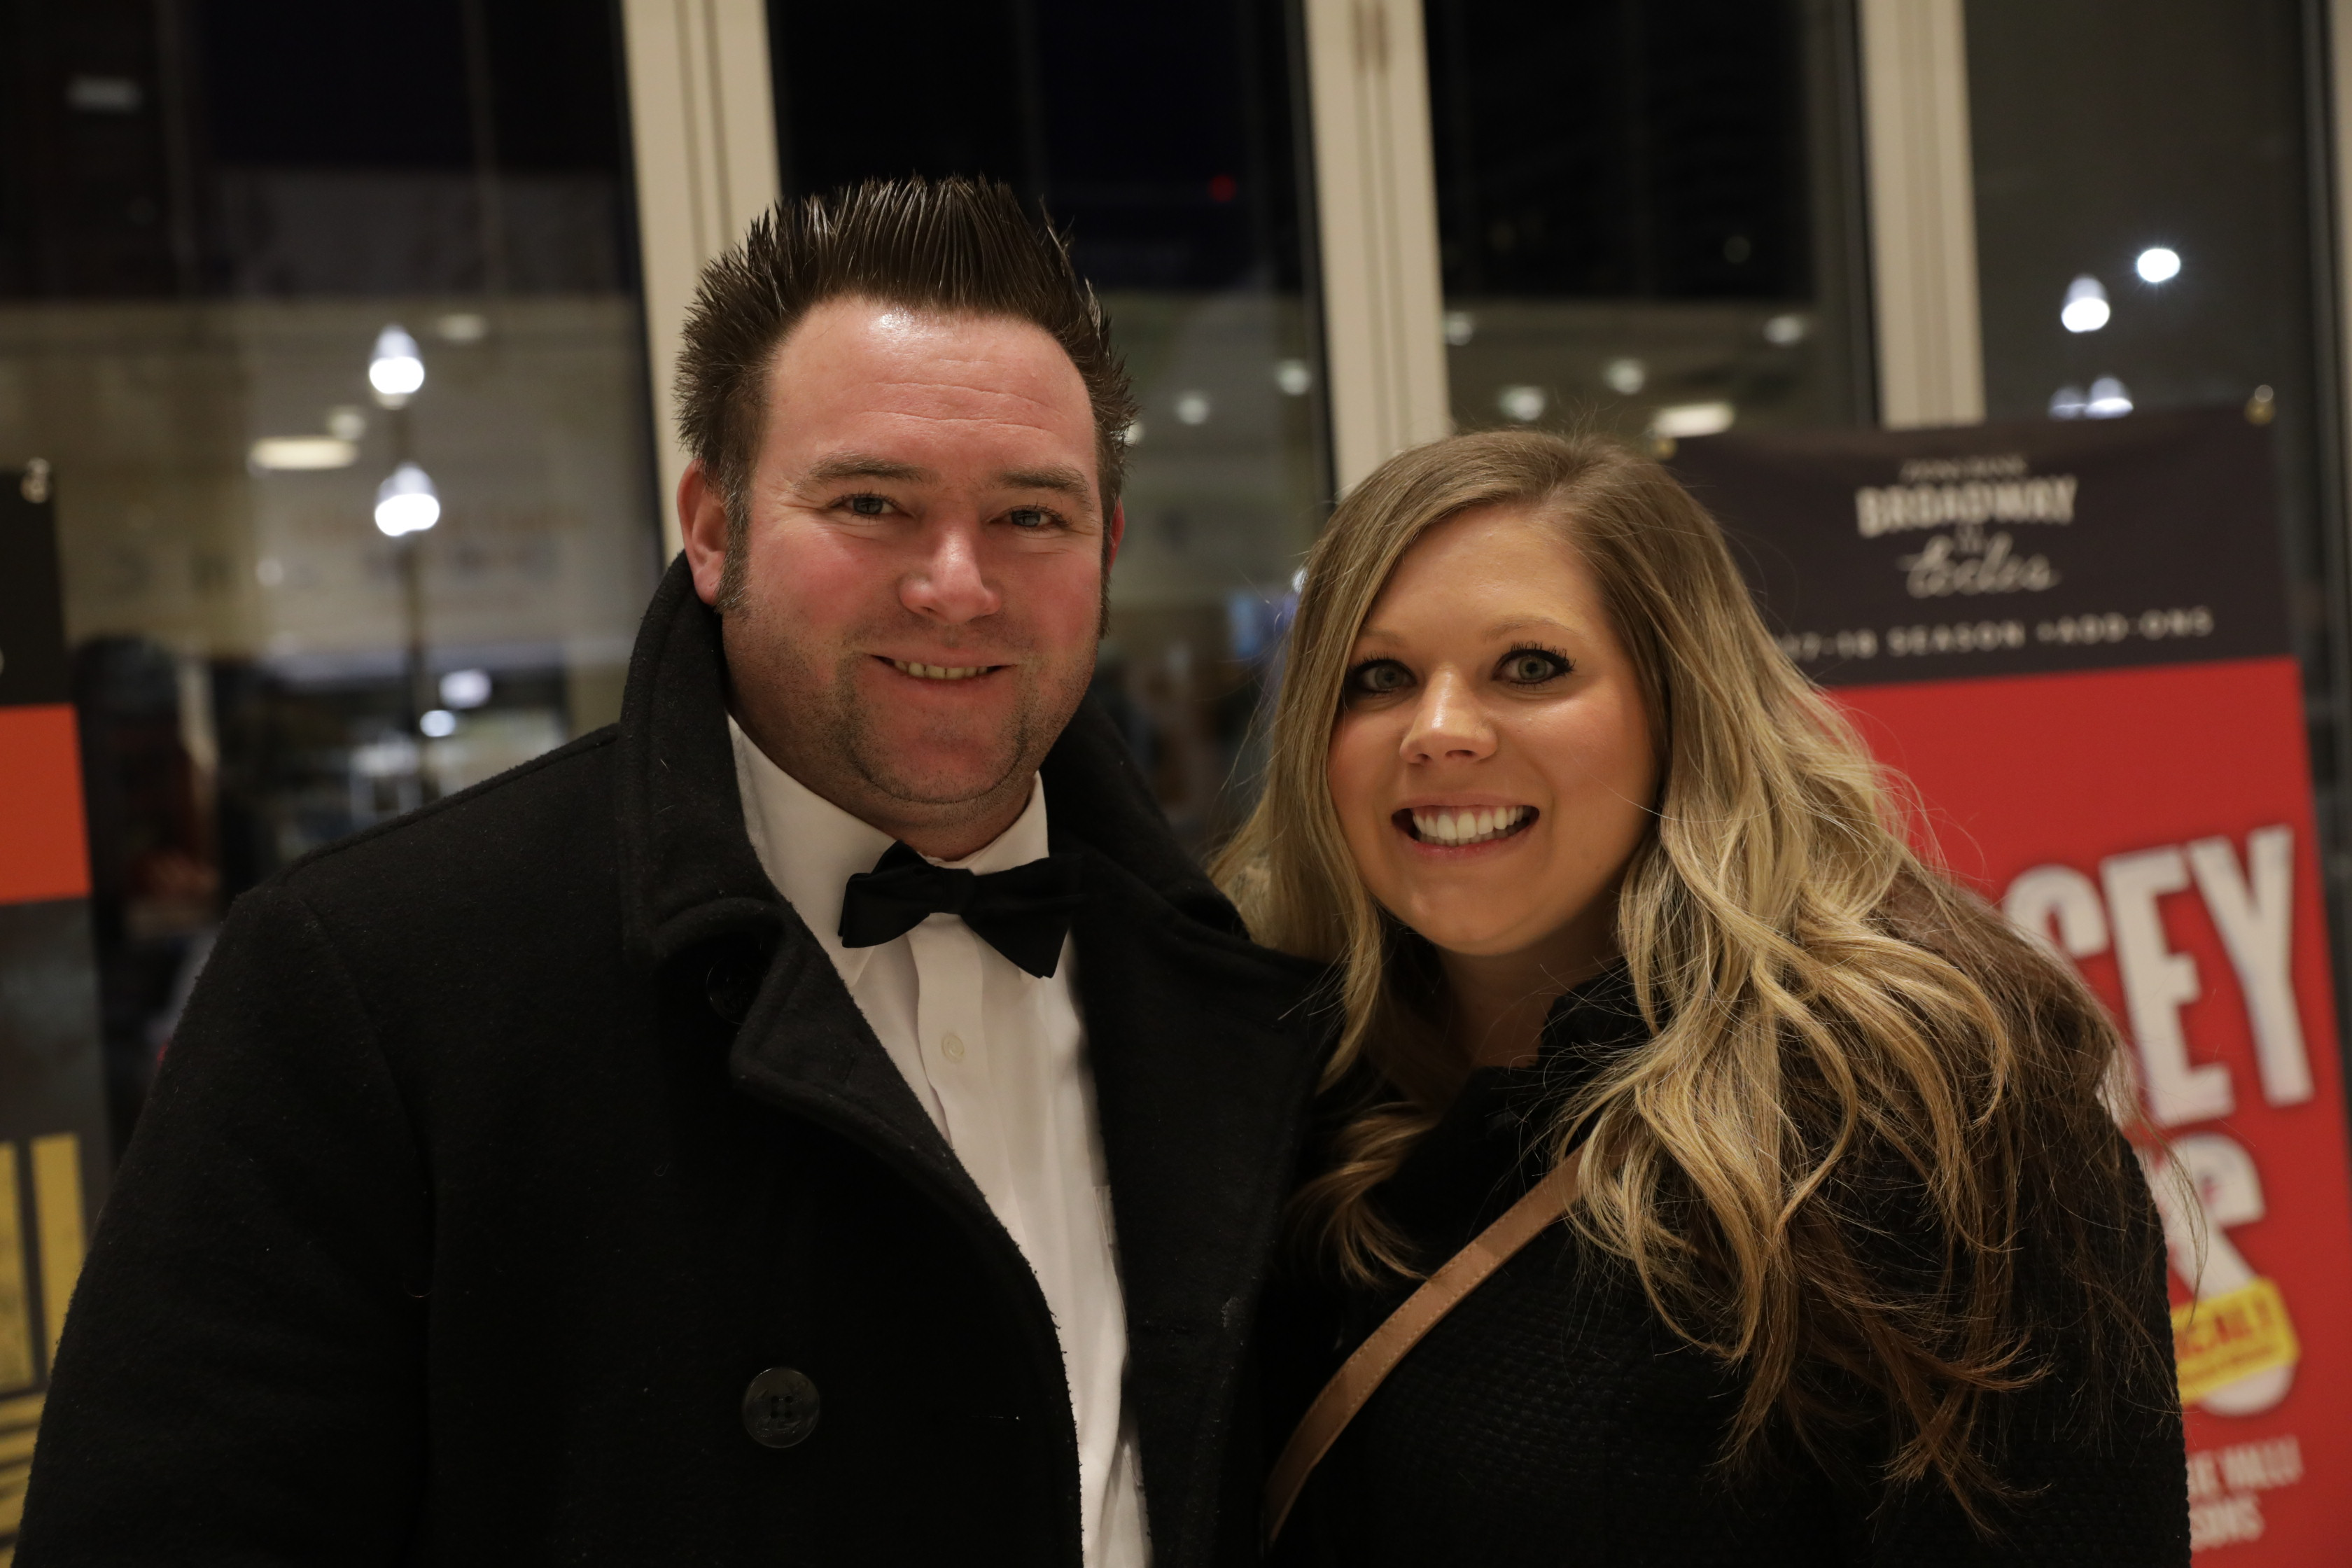 Cody and Natalie celebrate Valentines day by spending an evening out at the Eccles Theater. Photo: Lmsorenson.net